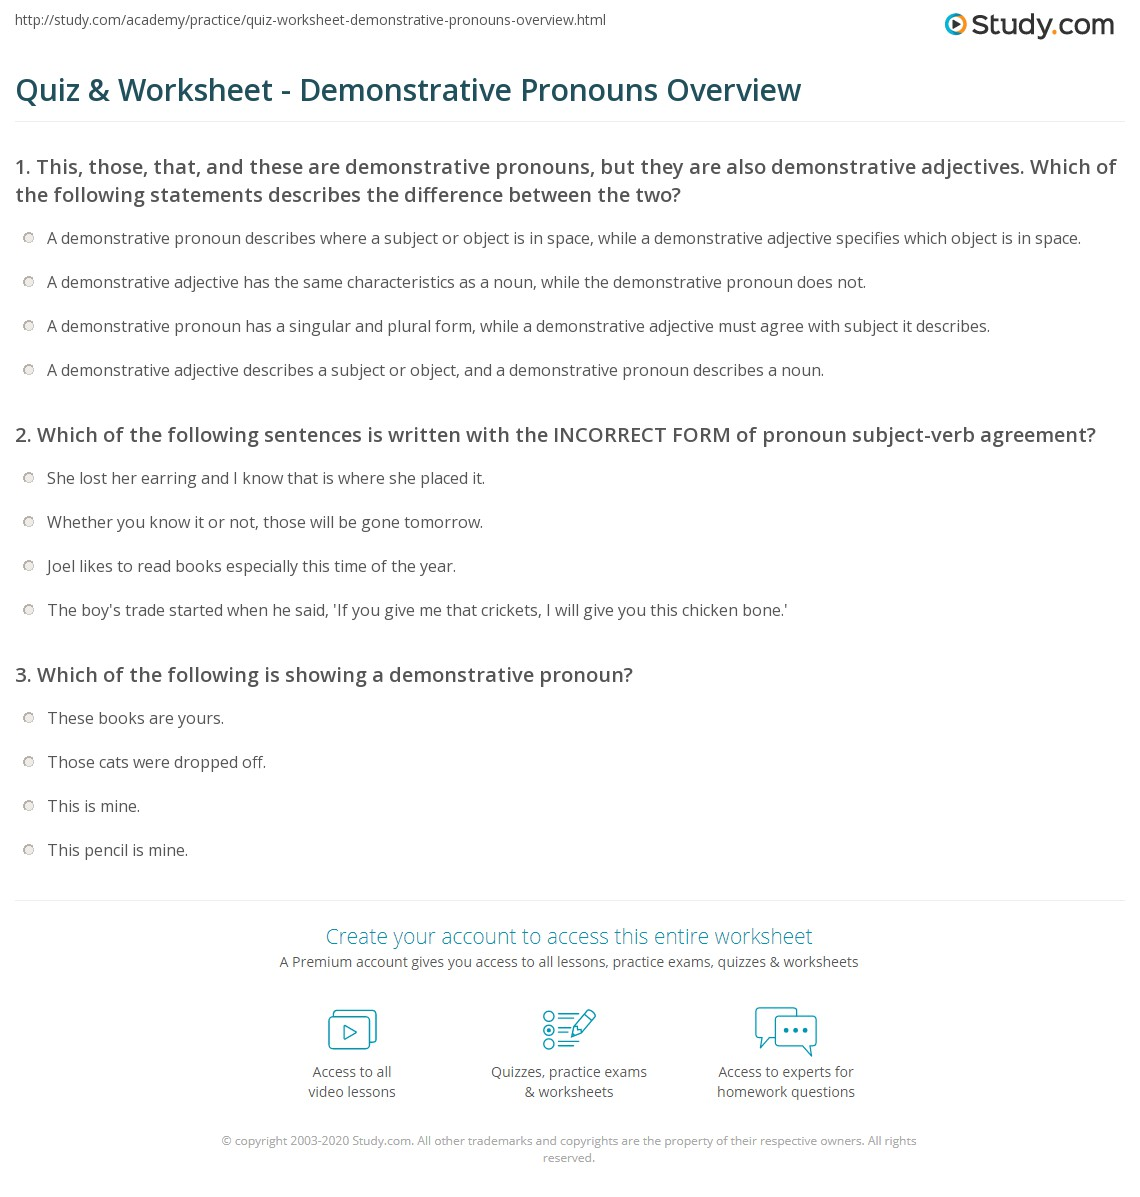 hight resolution of Quiz \u0026 Worksheet - Demonstrative Pronouns Overview   Study.com